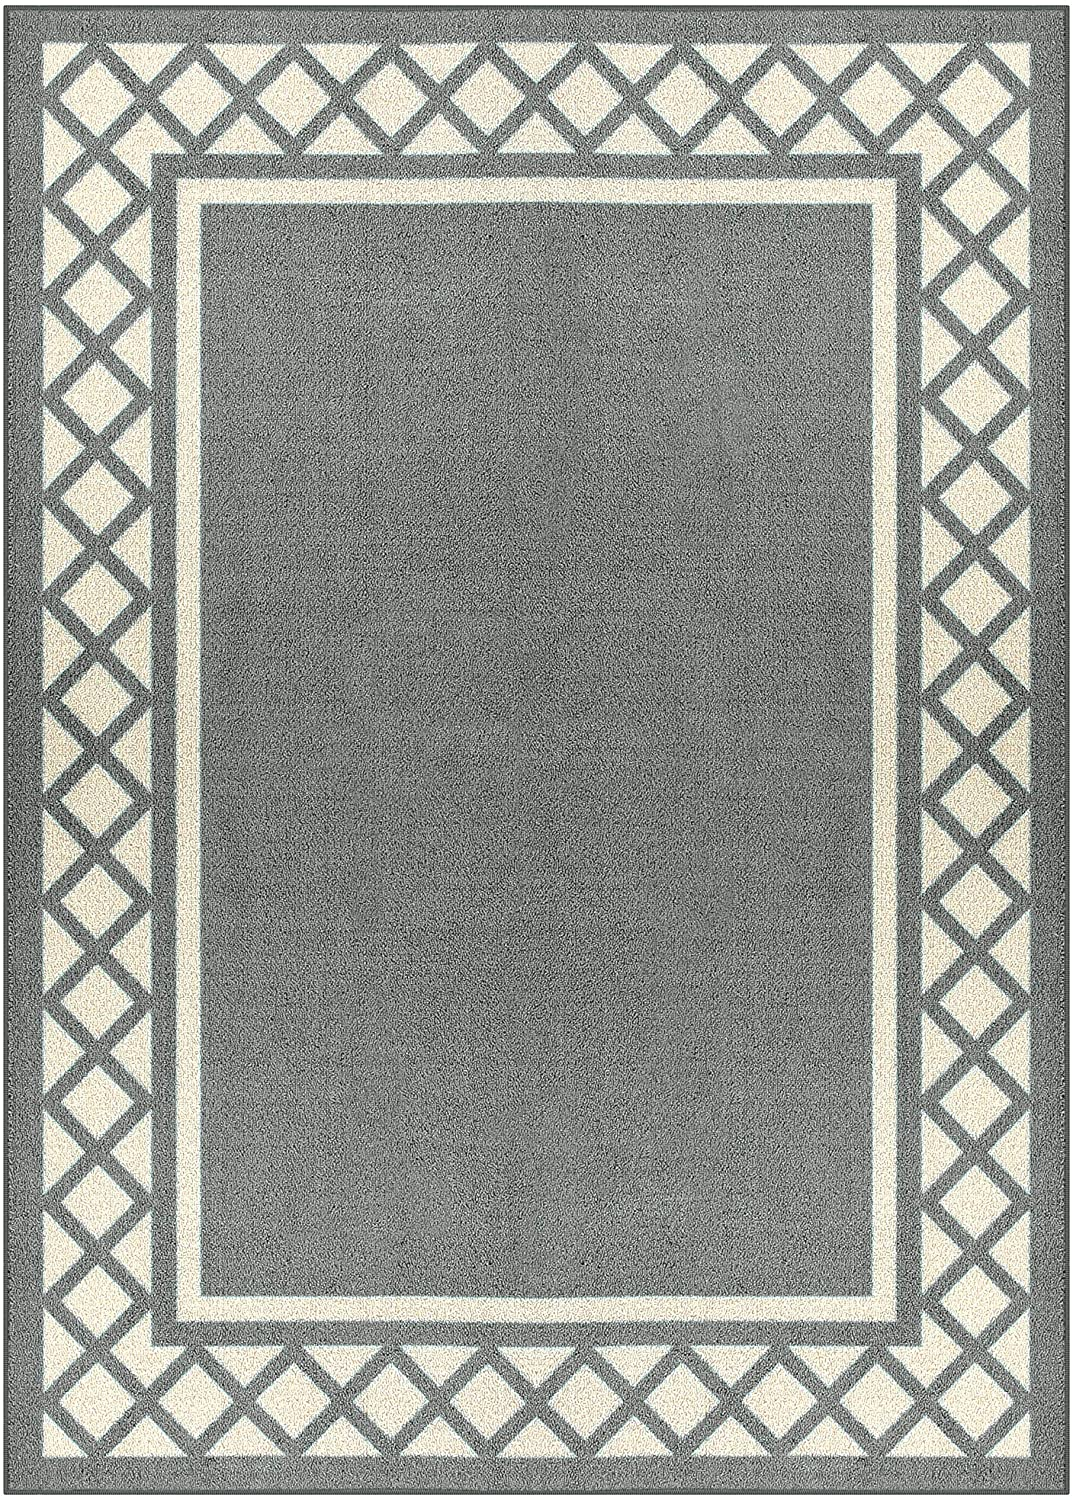 Maples Rugs Bella Area Rugs for Living Room & Bedroom [Made in USA], 5 x 7, Grey